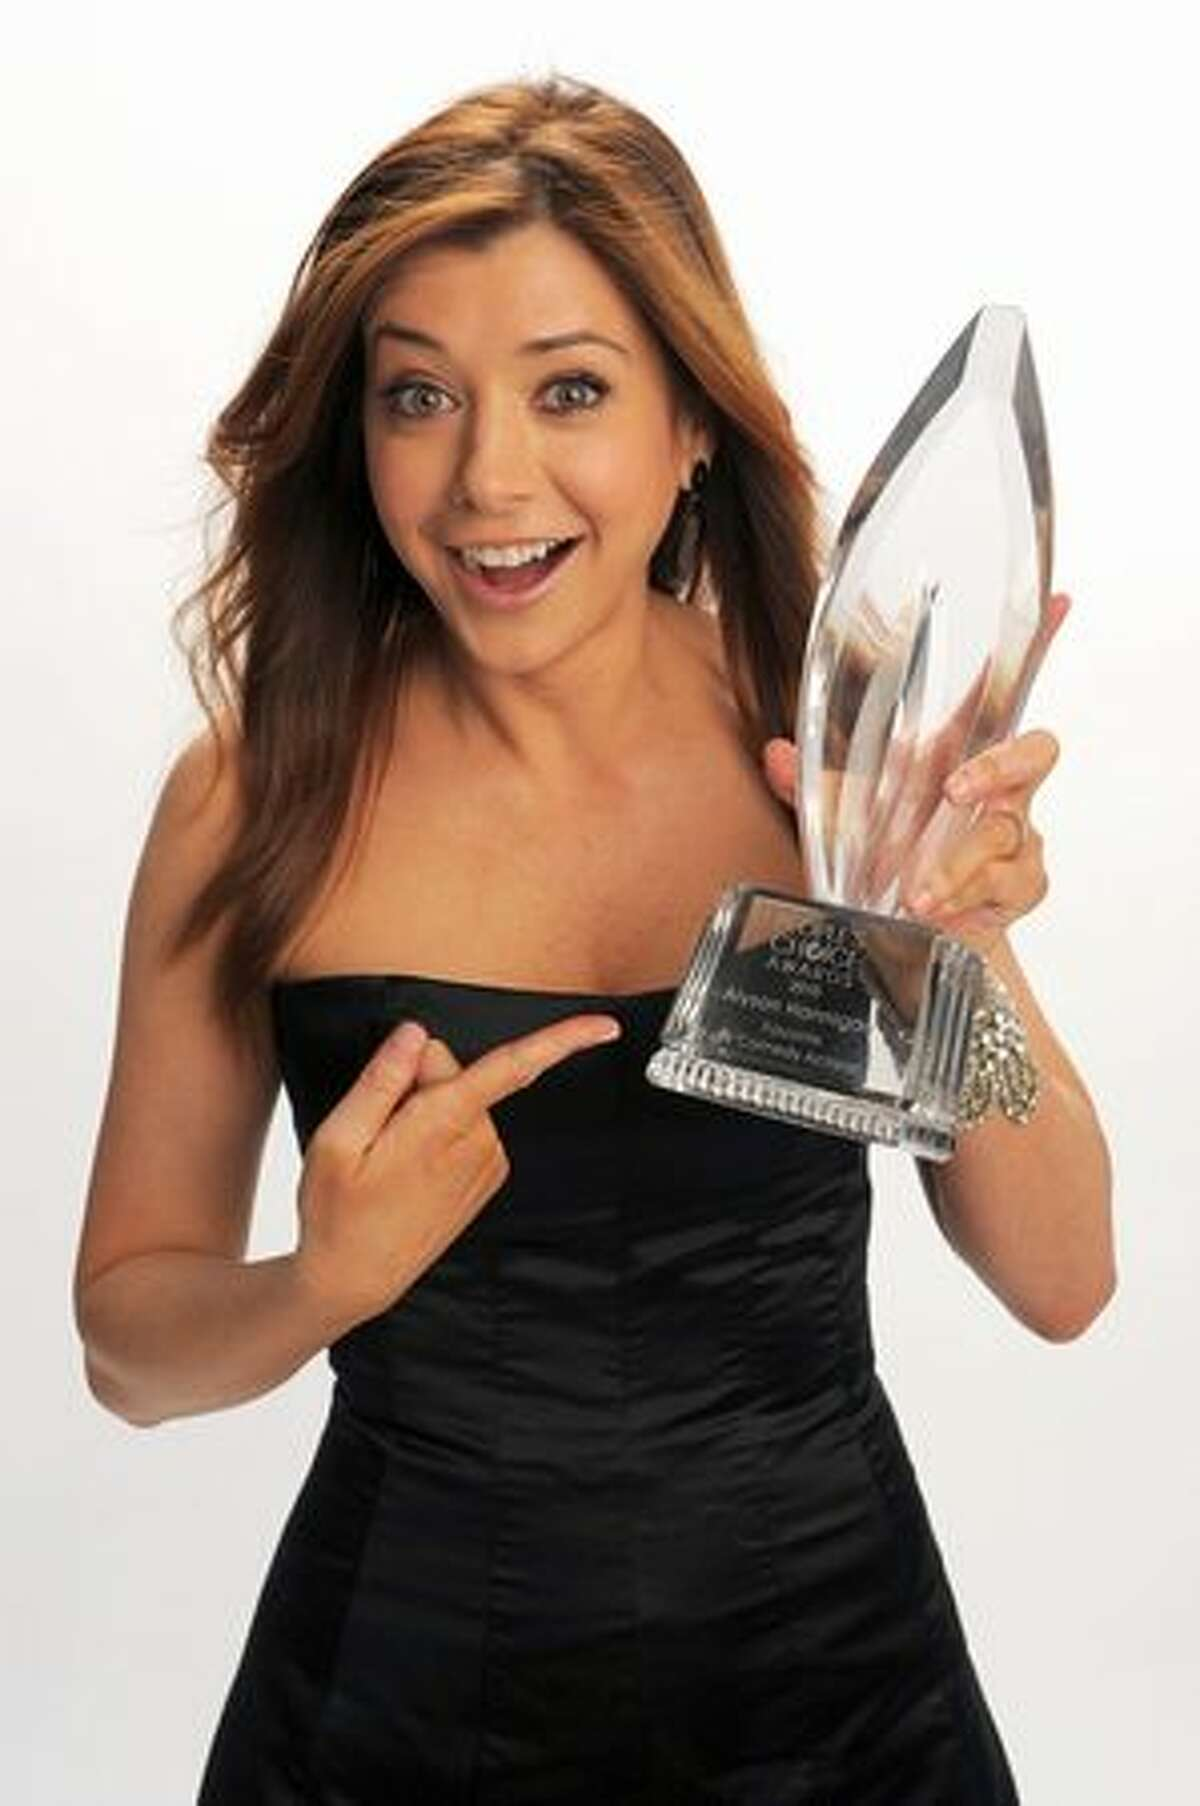 Actress Alyson Hannigan poses for a portrait for Favorite TV Comedy Actress.